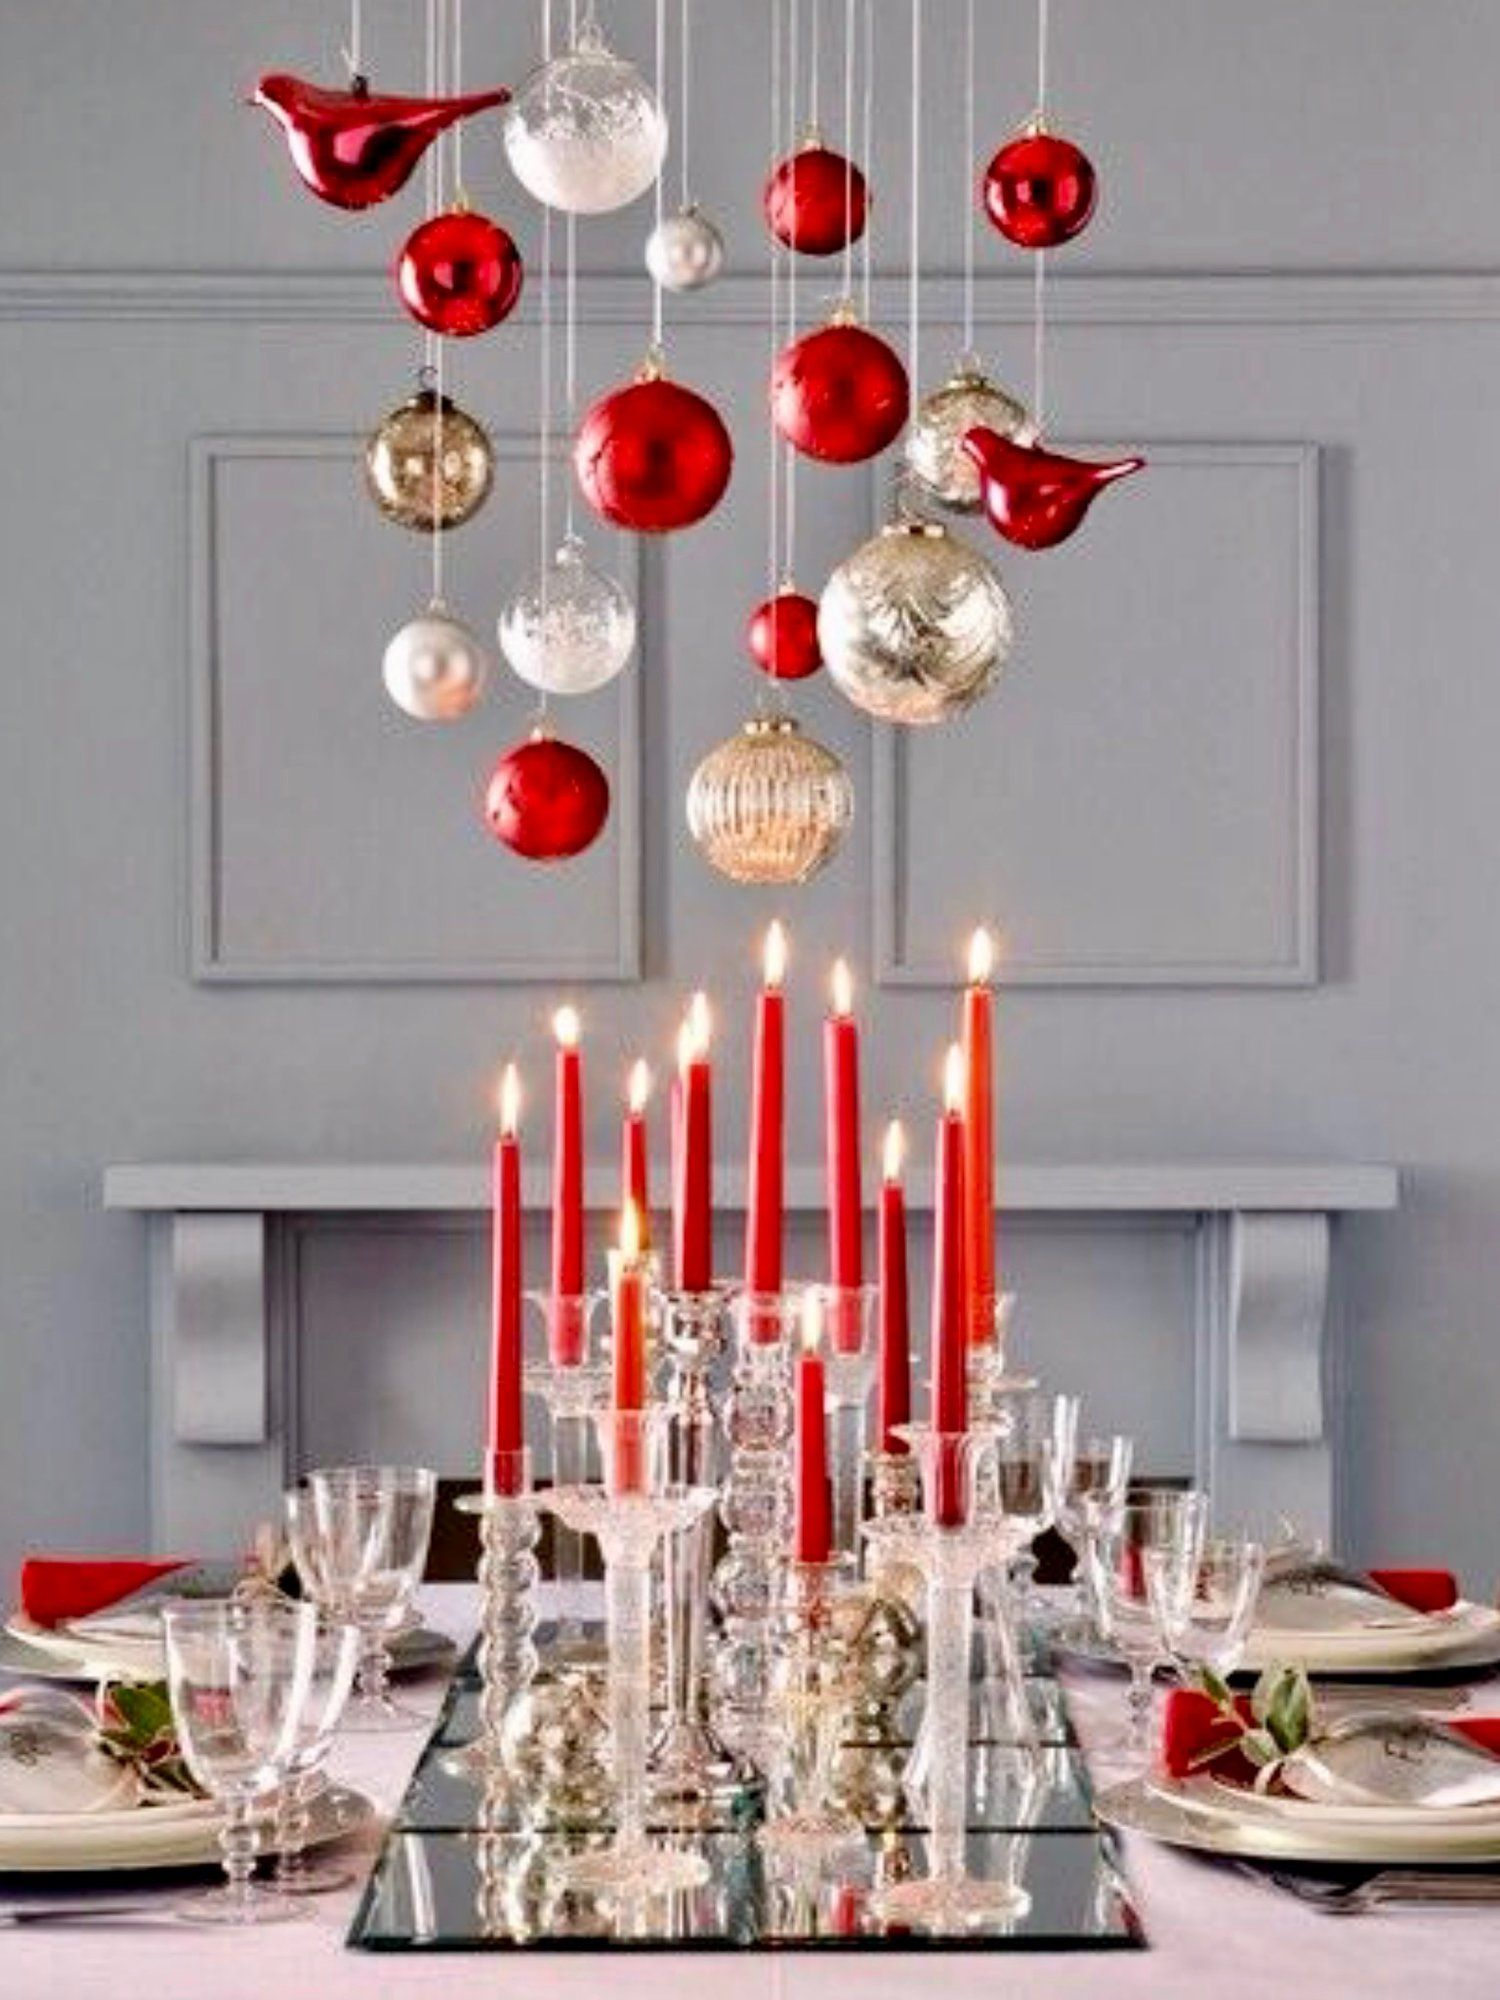 Top 150 Christmas Tables (1/5)🎄 | Christmas | Pinterest | Christmas ...